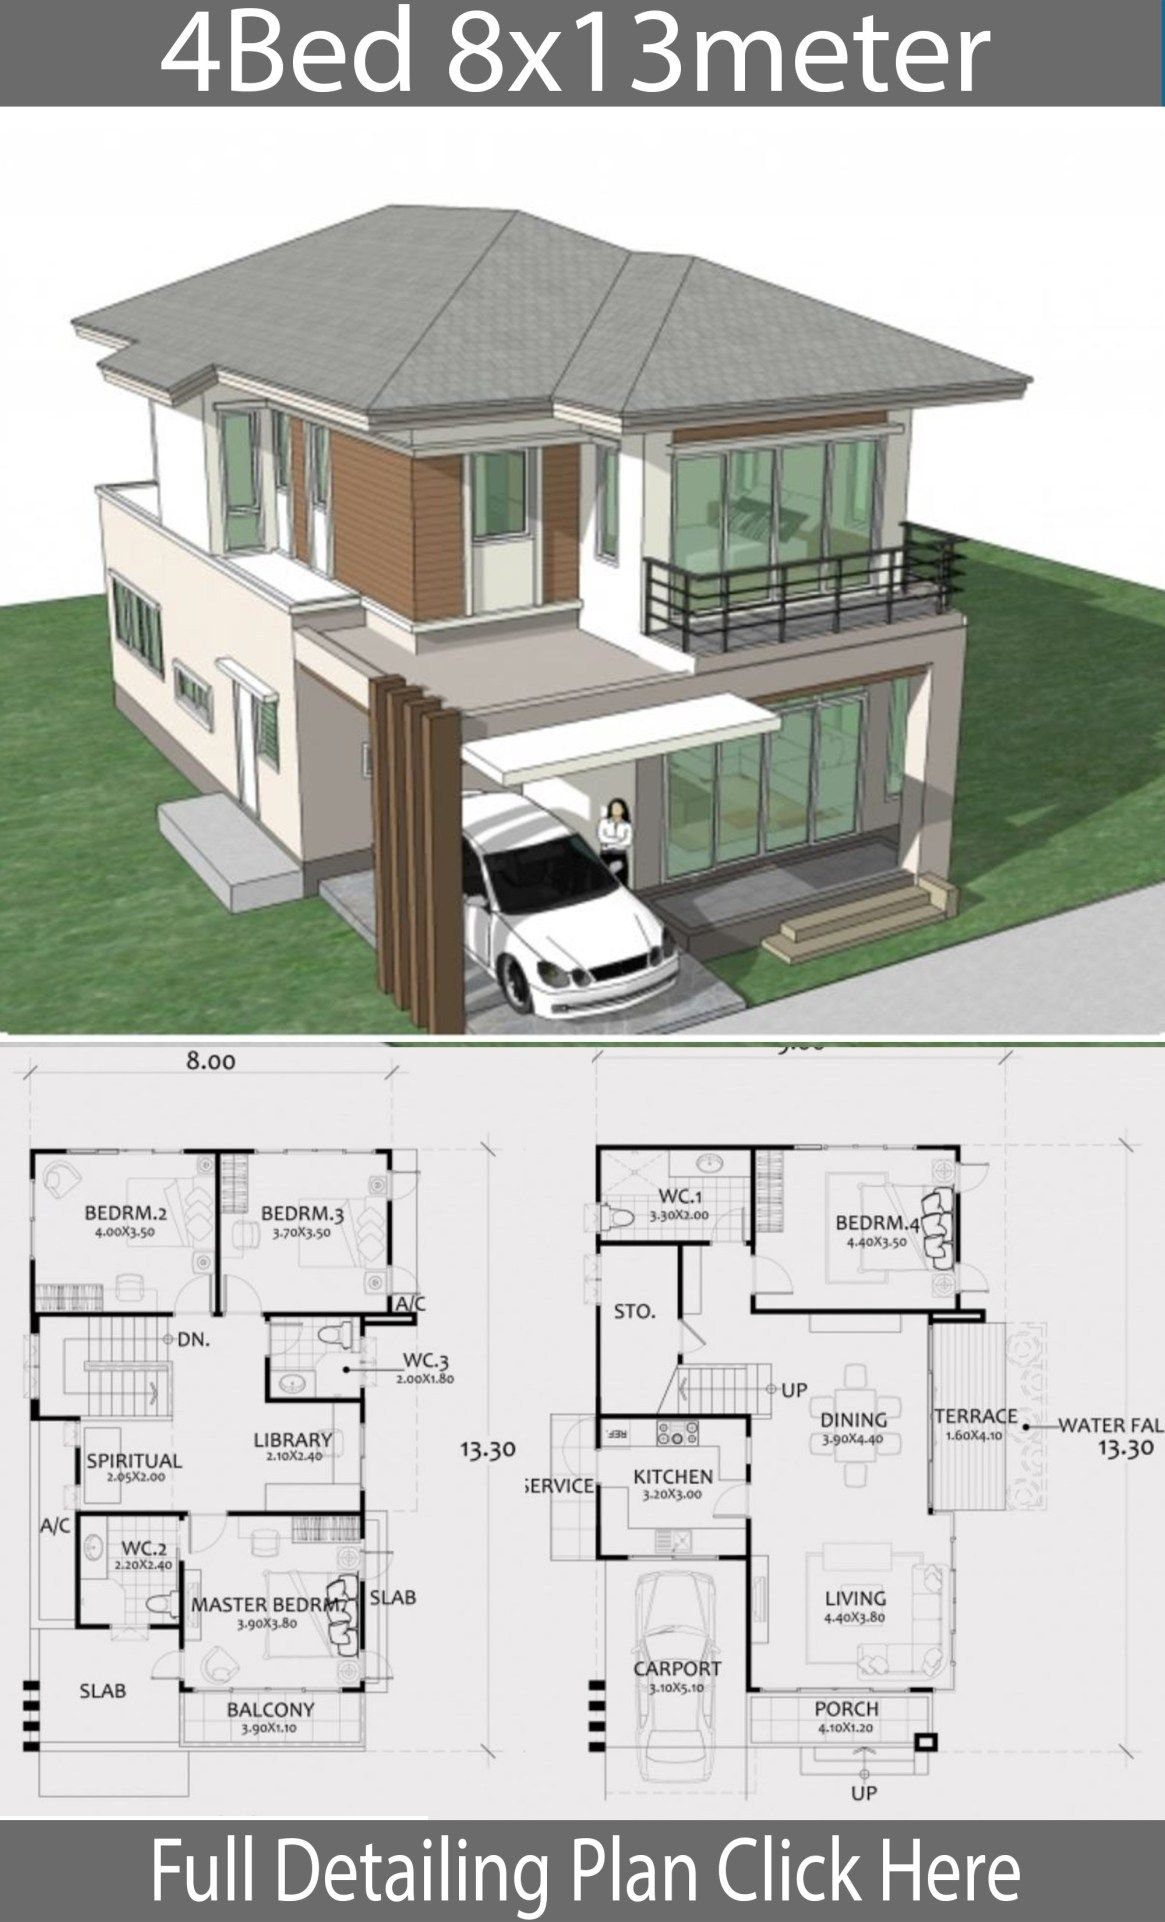 Home Design Plan 8x13m With 4 Bedrooms Home Design With Plansearch House Architecture Design Architectural House Plans Home Design Plans